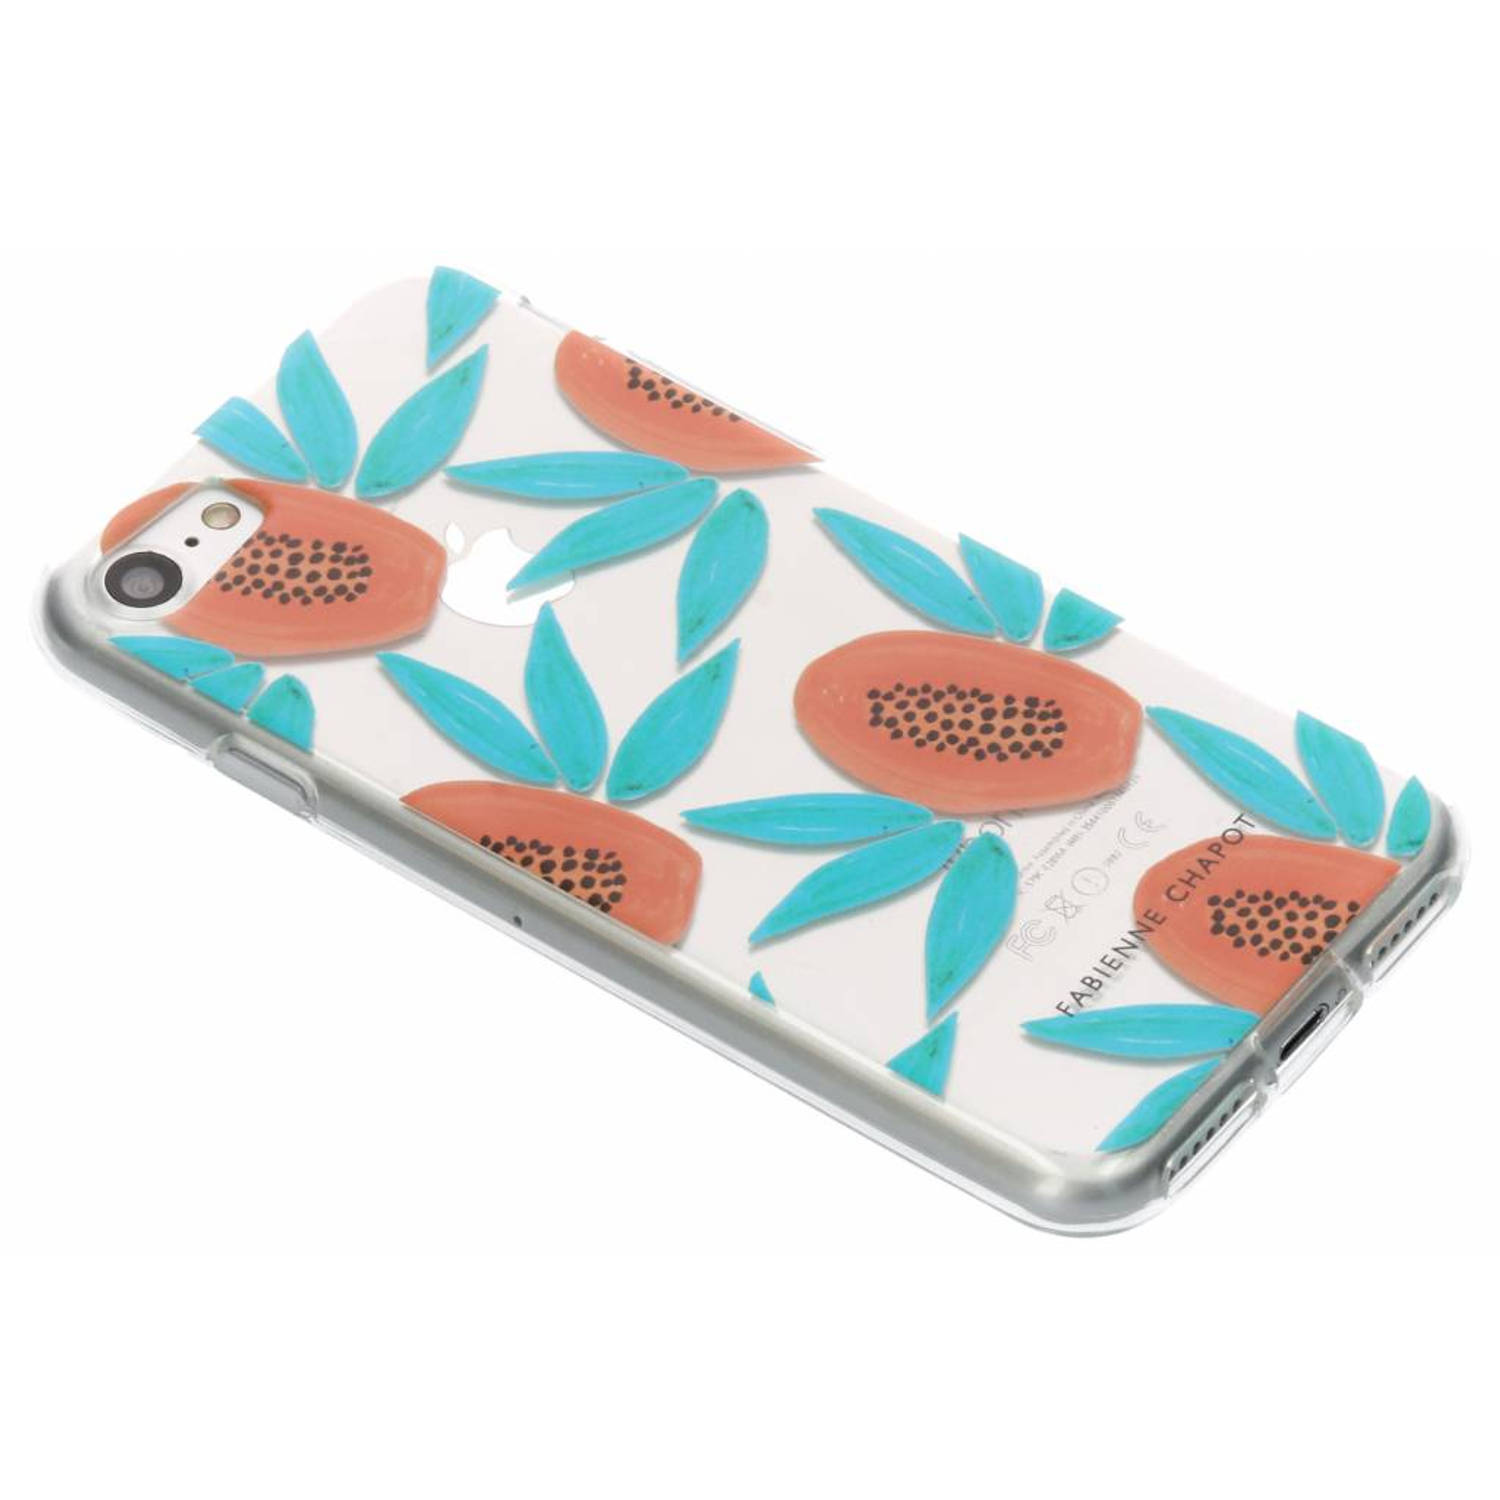 Papaya Softcase voor de iPhone 8 / 7